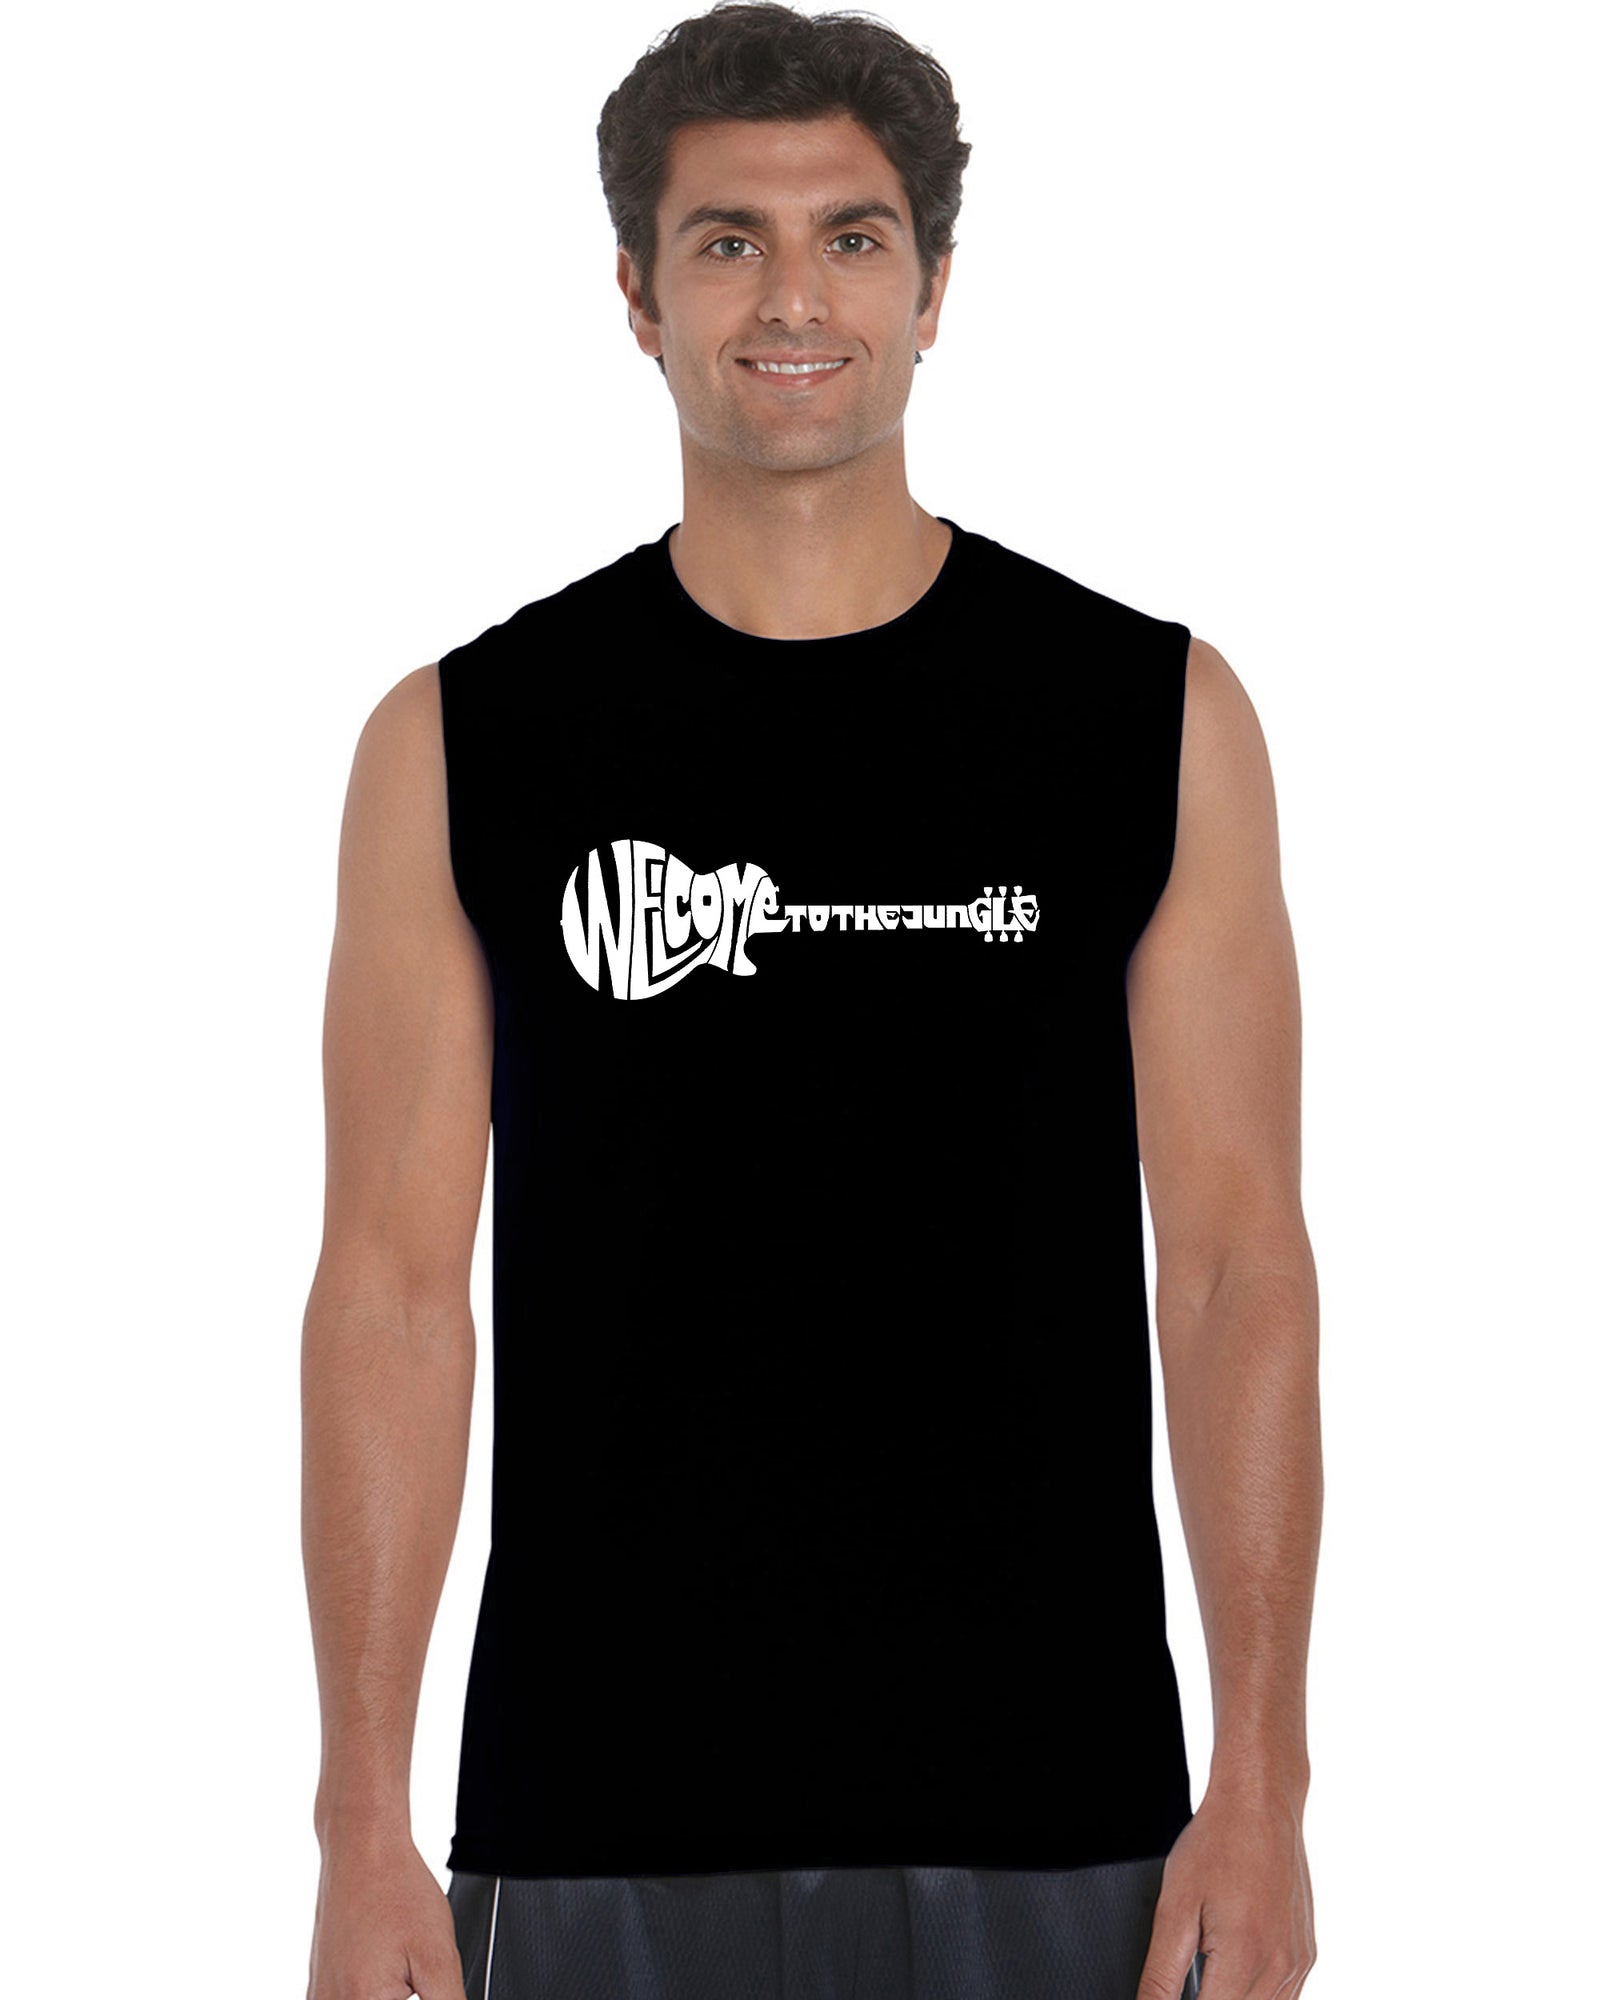 Men's Sleeveless T-shirt - Welcome to the Jungle